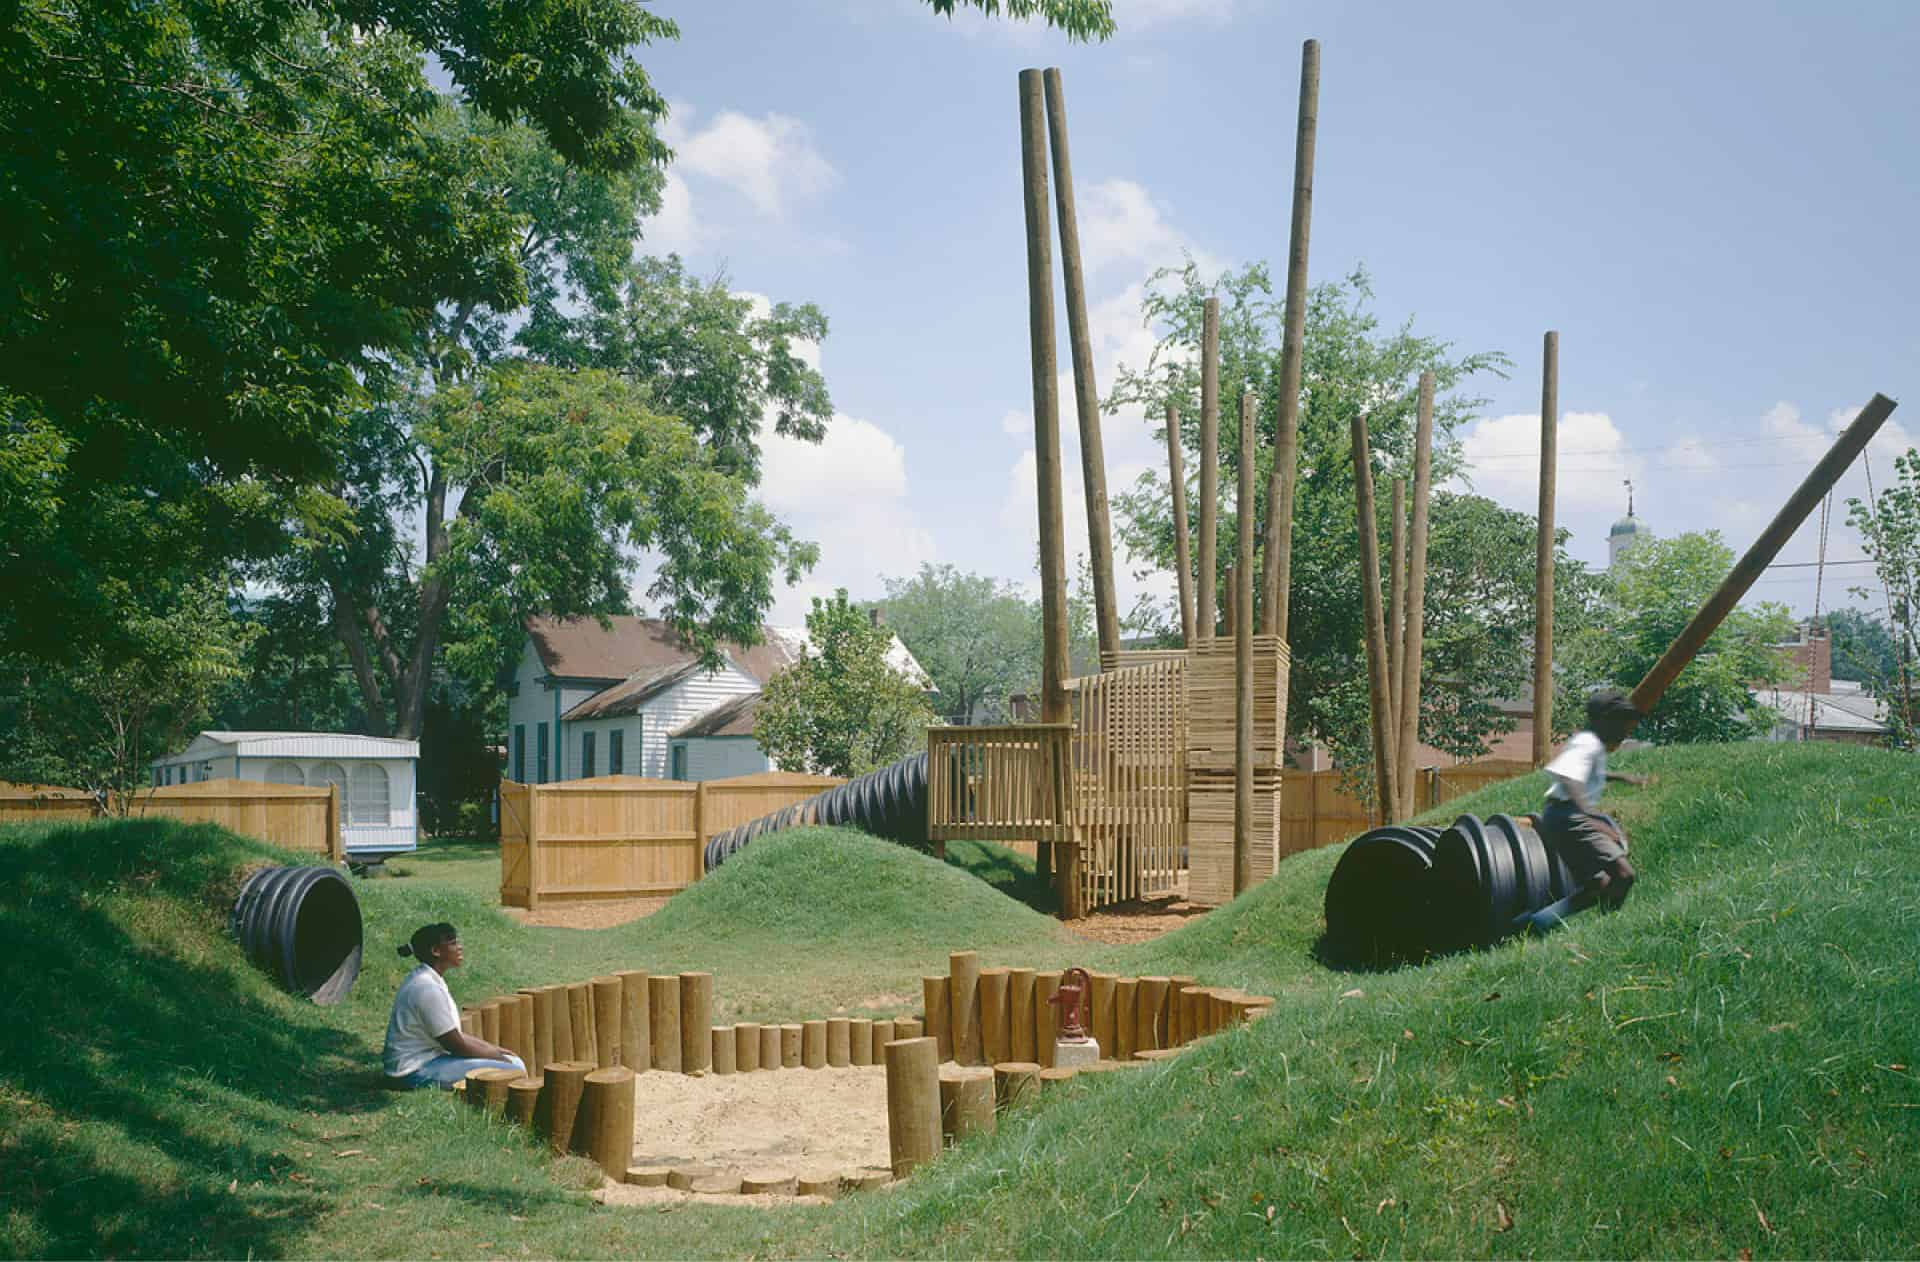 Children playing on the HERO playground